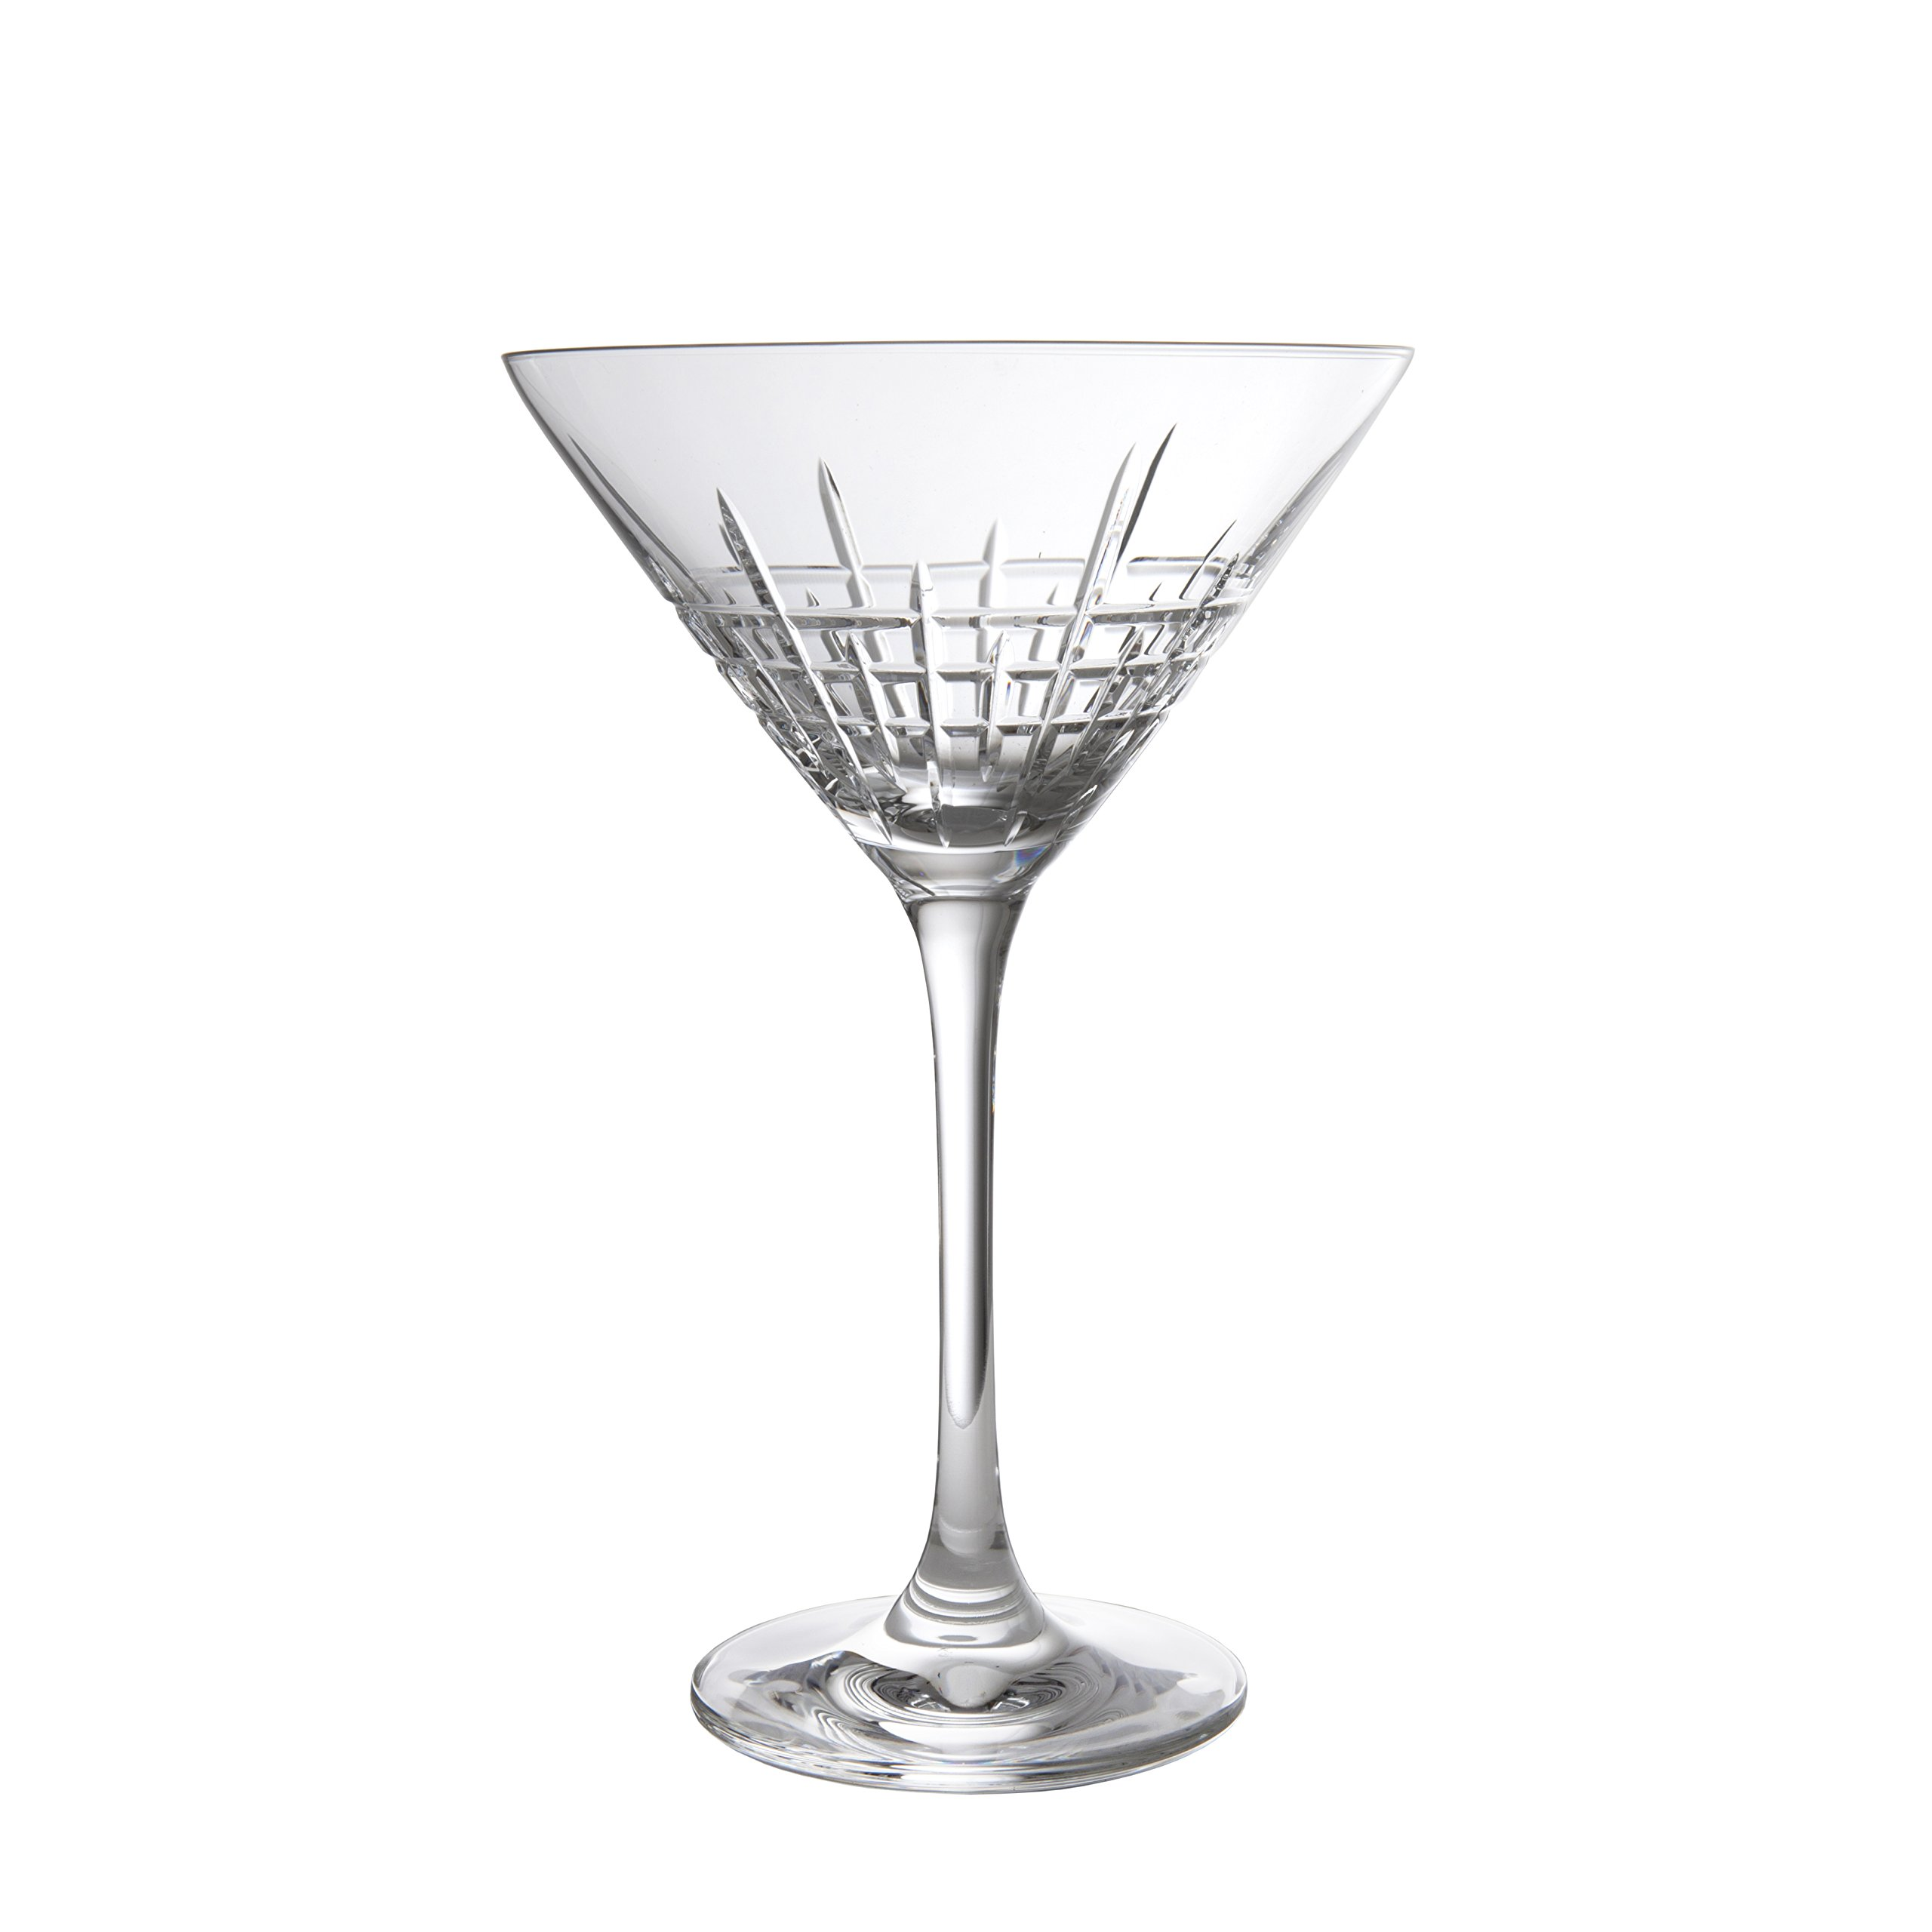 Schott Zwiesel Tritan Crystal Glass Distil Barware Collection Aberdeen Martini Cocktail Glasses (Set of 6), 8.5 oz, Clear